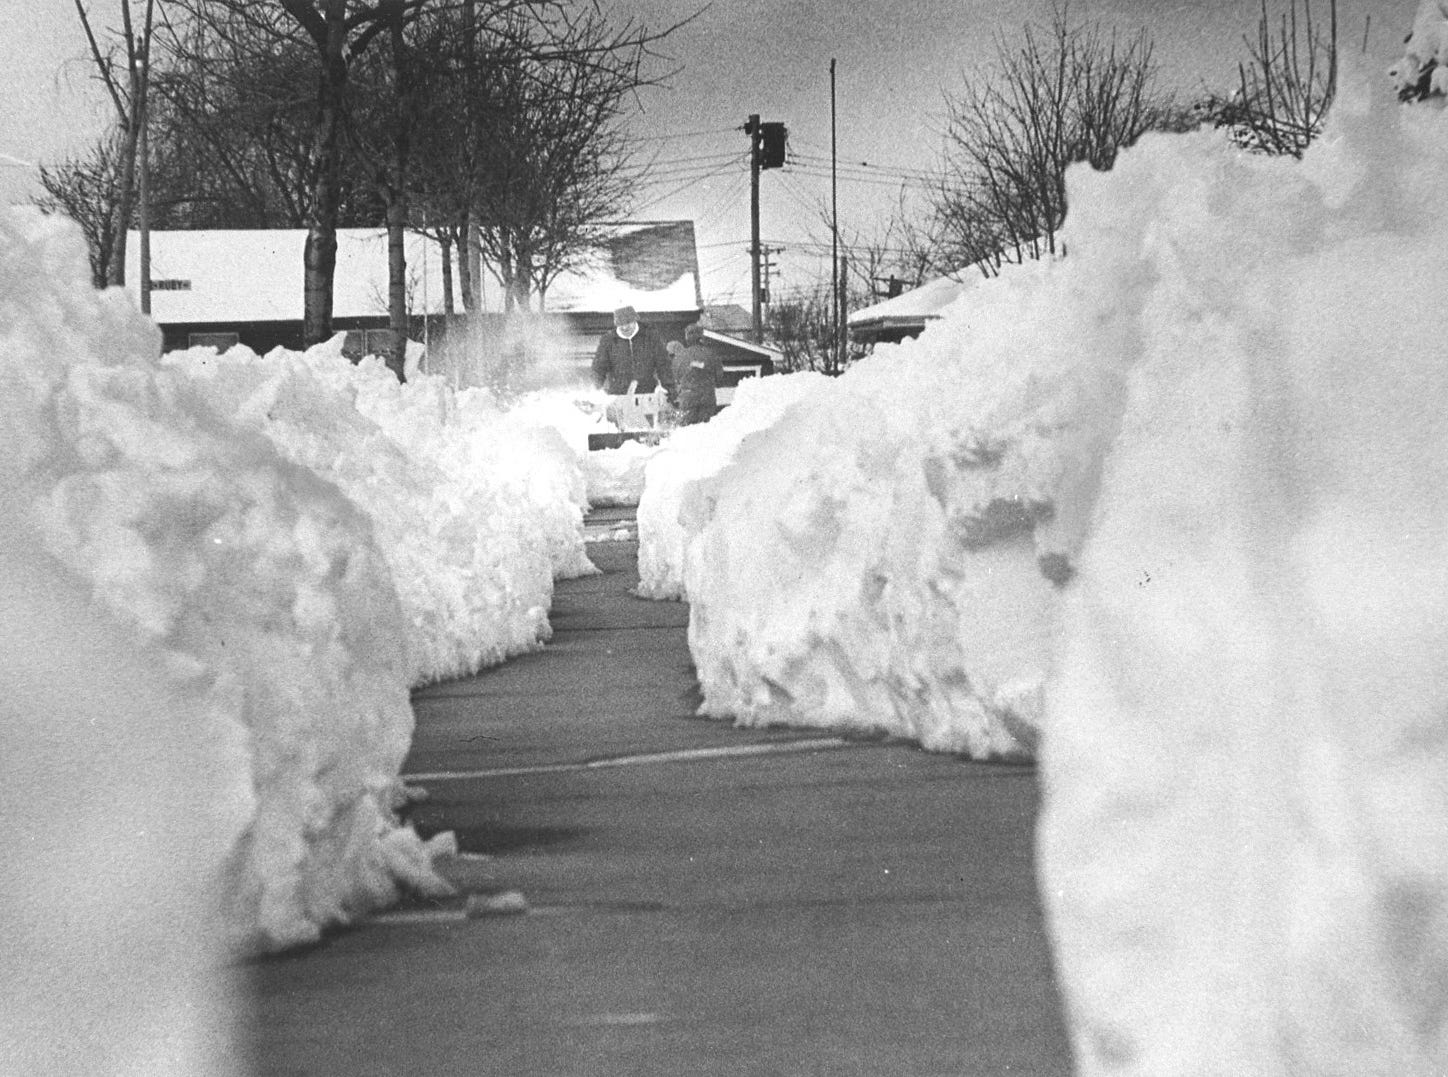 "Copy of a negative of a snowstorm in Milwaukee. On April 9th, 1973, 13 inches of snow fell. At was the second biggest April snowstorm in history up to that time. This photo was in the April 11th edition of the Journal with the caption ""A snowblower was used by Richard Schmidt in front of his home at 4452 N. 83rd St. as he cleared the walk adjacent to the jagged path shoveled by his neighbor."" Date is 4/11/1973 transparency folder #73521"